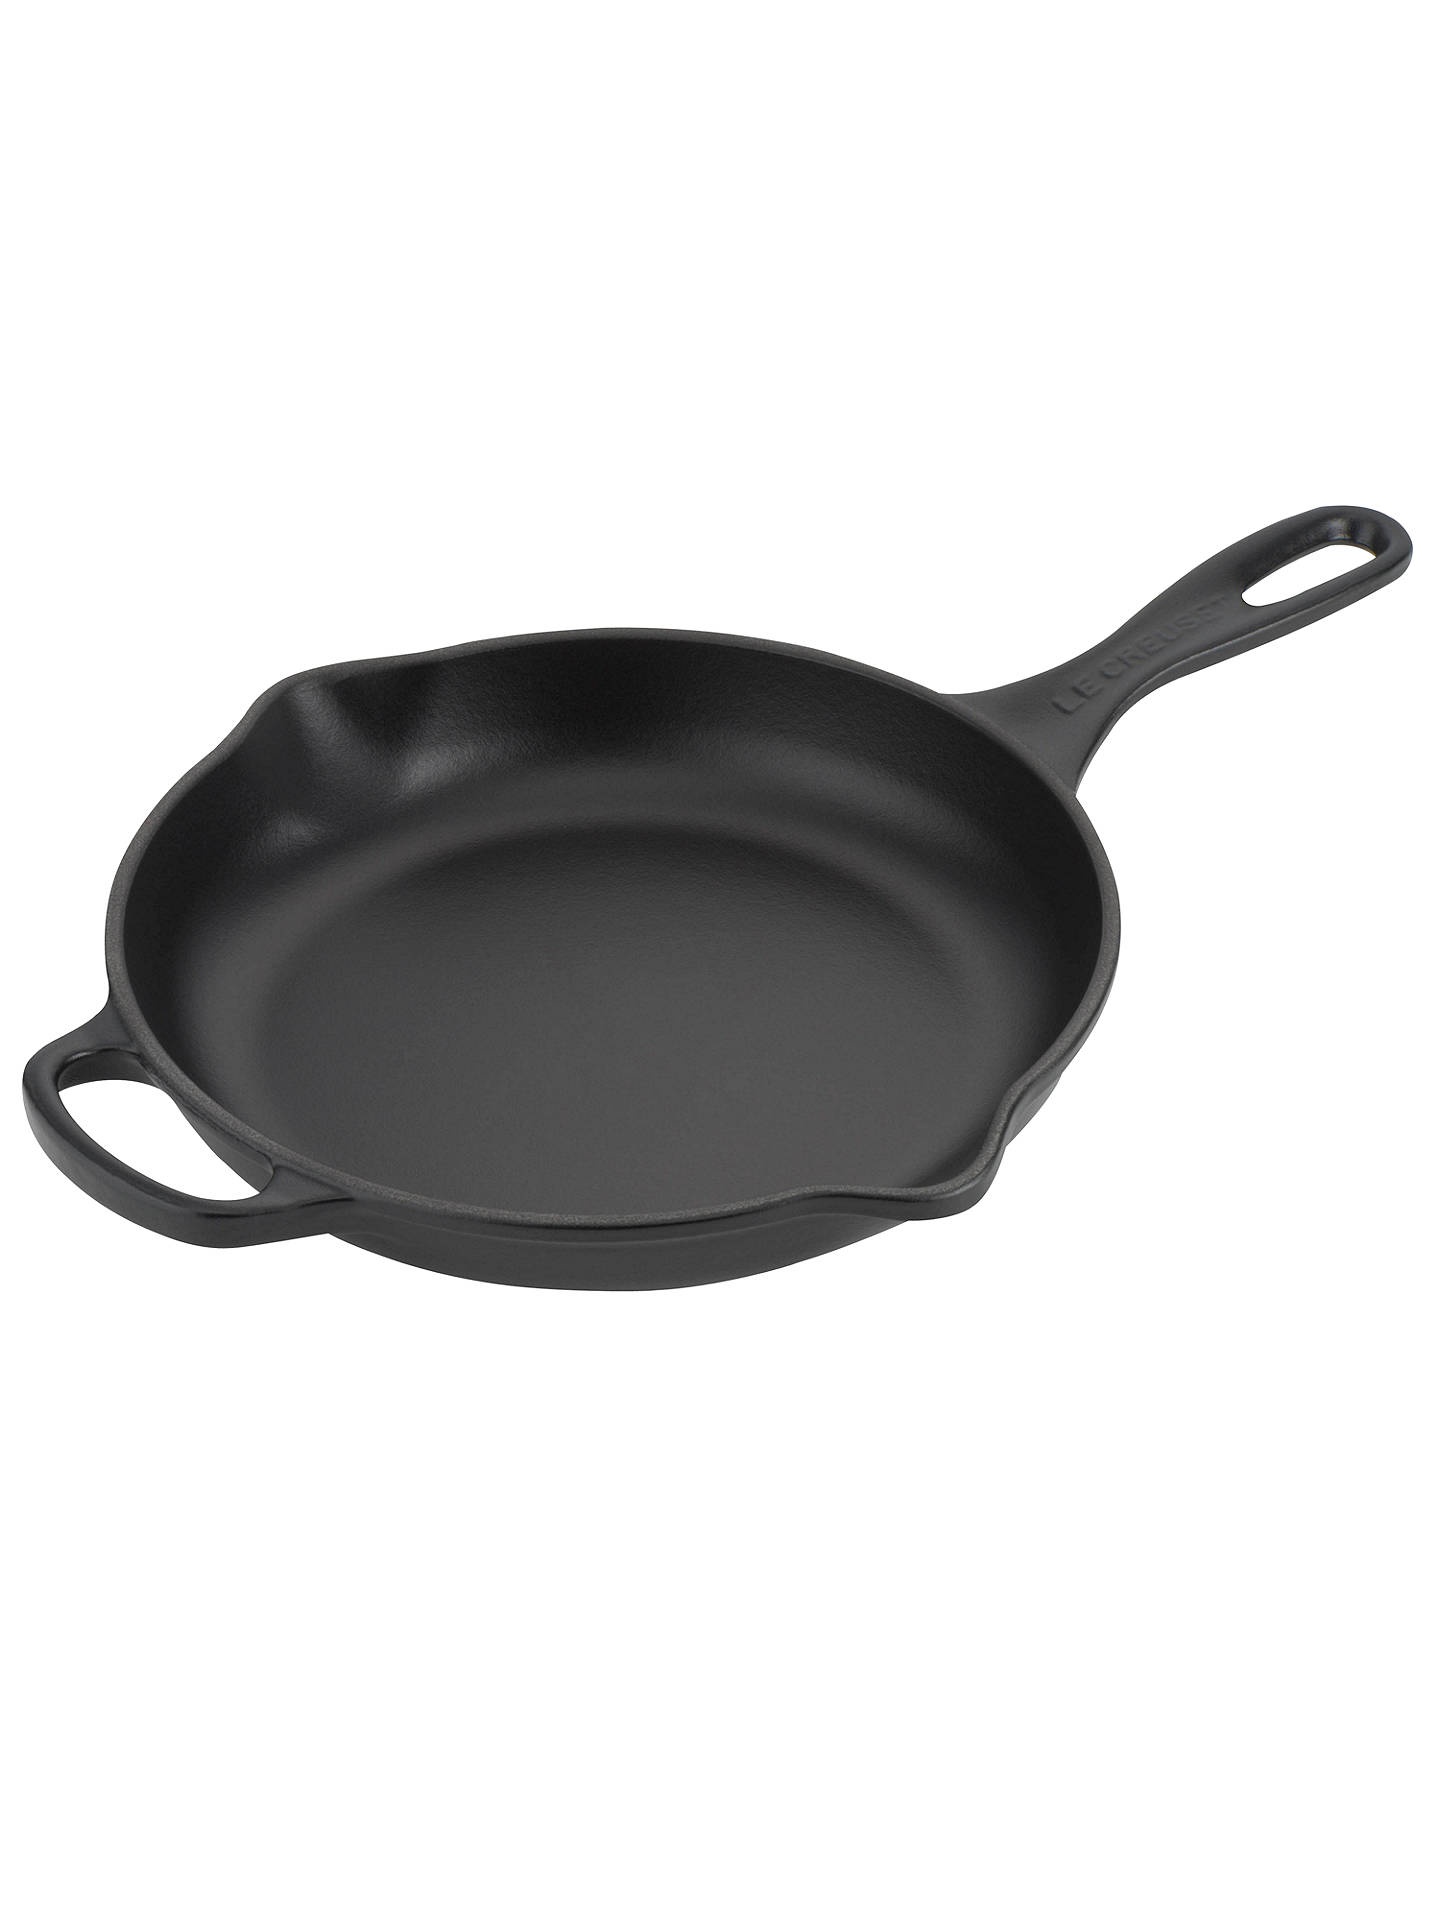 BuyLe Creuset Cast Iron 23cm Signature Skillet, Satin Black Online at johnlewis.com